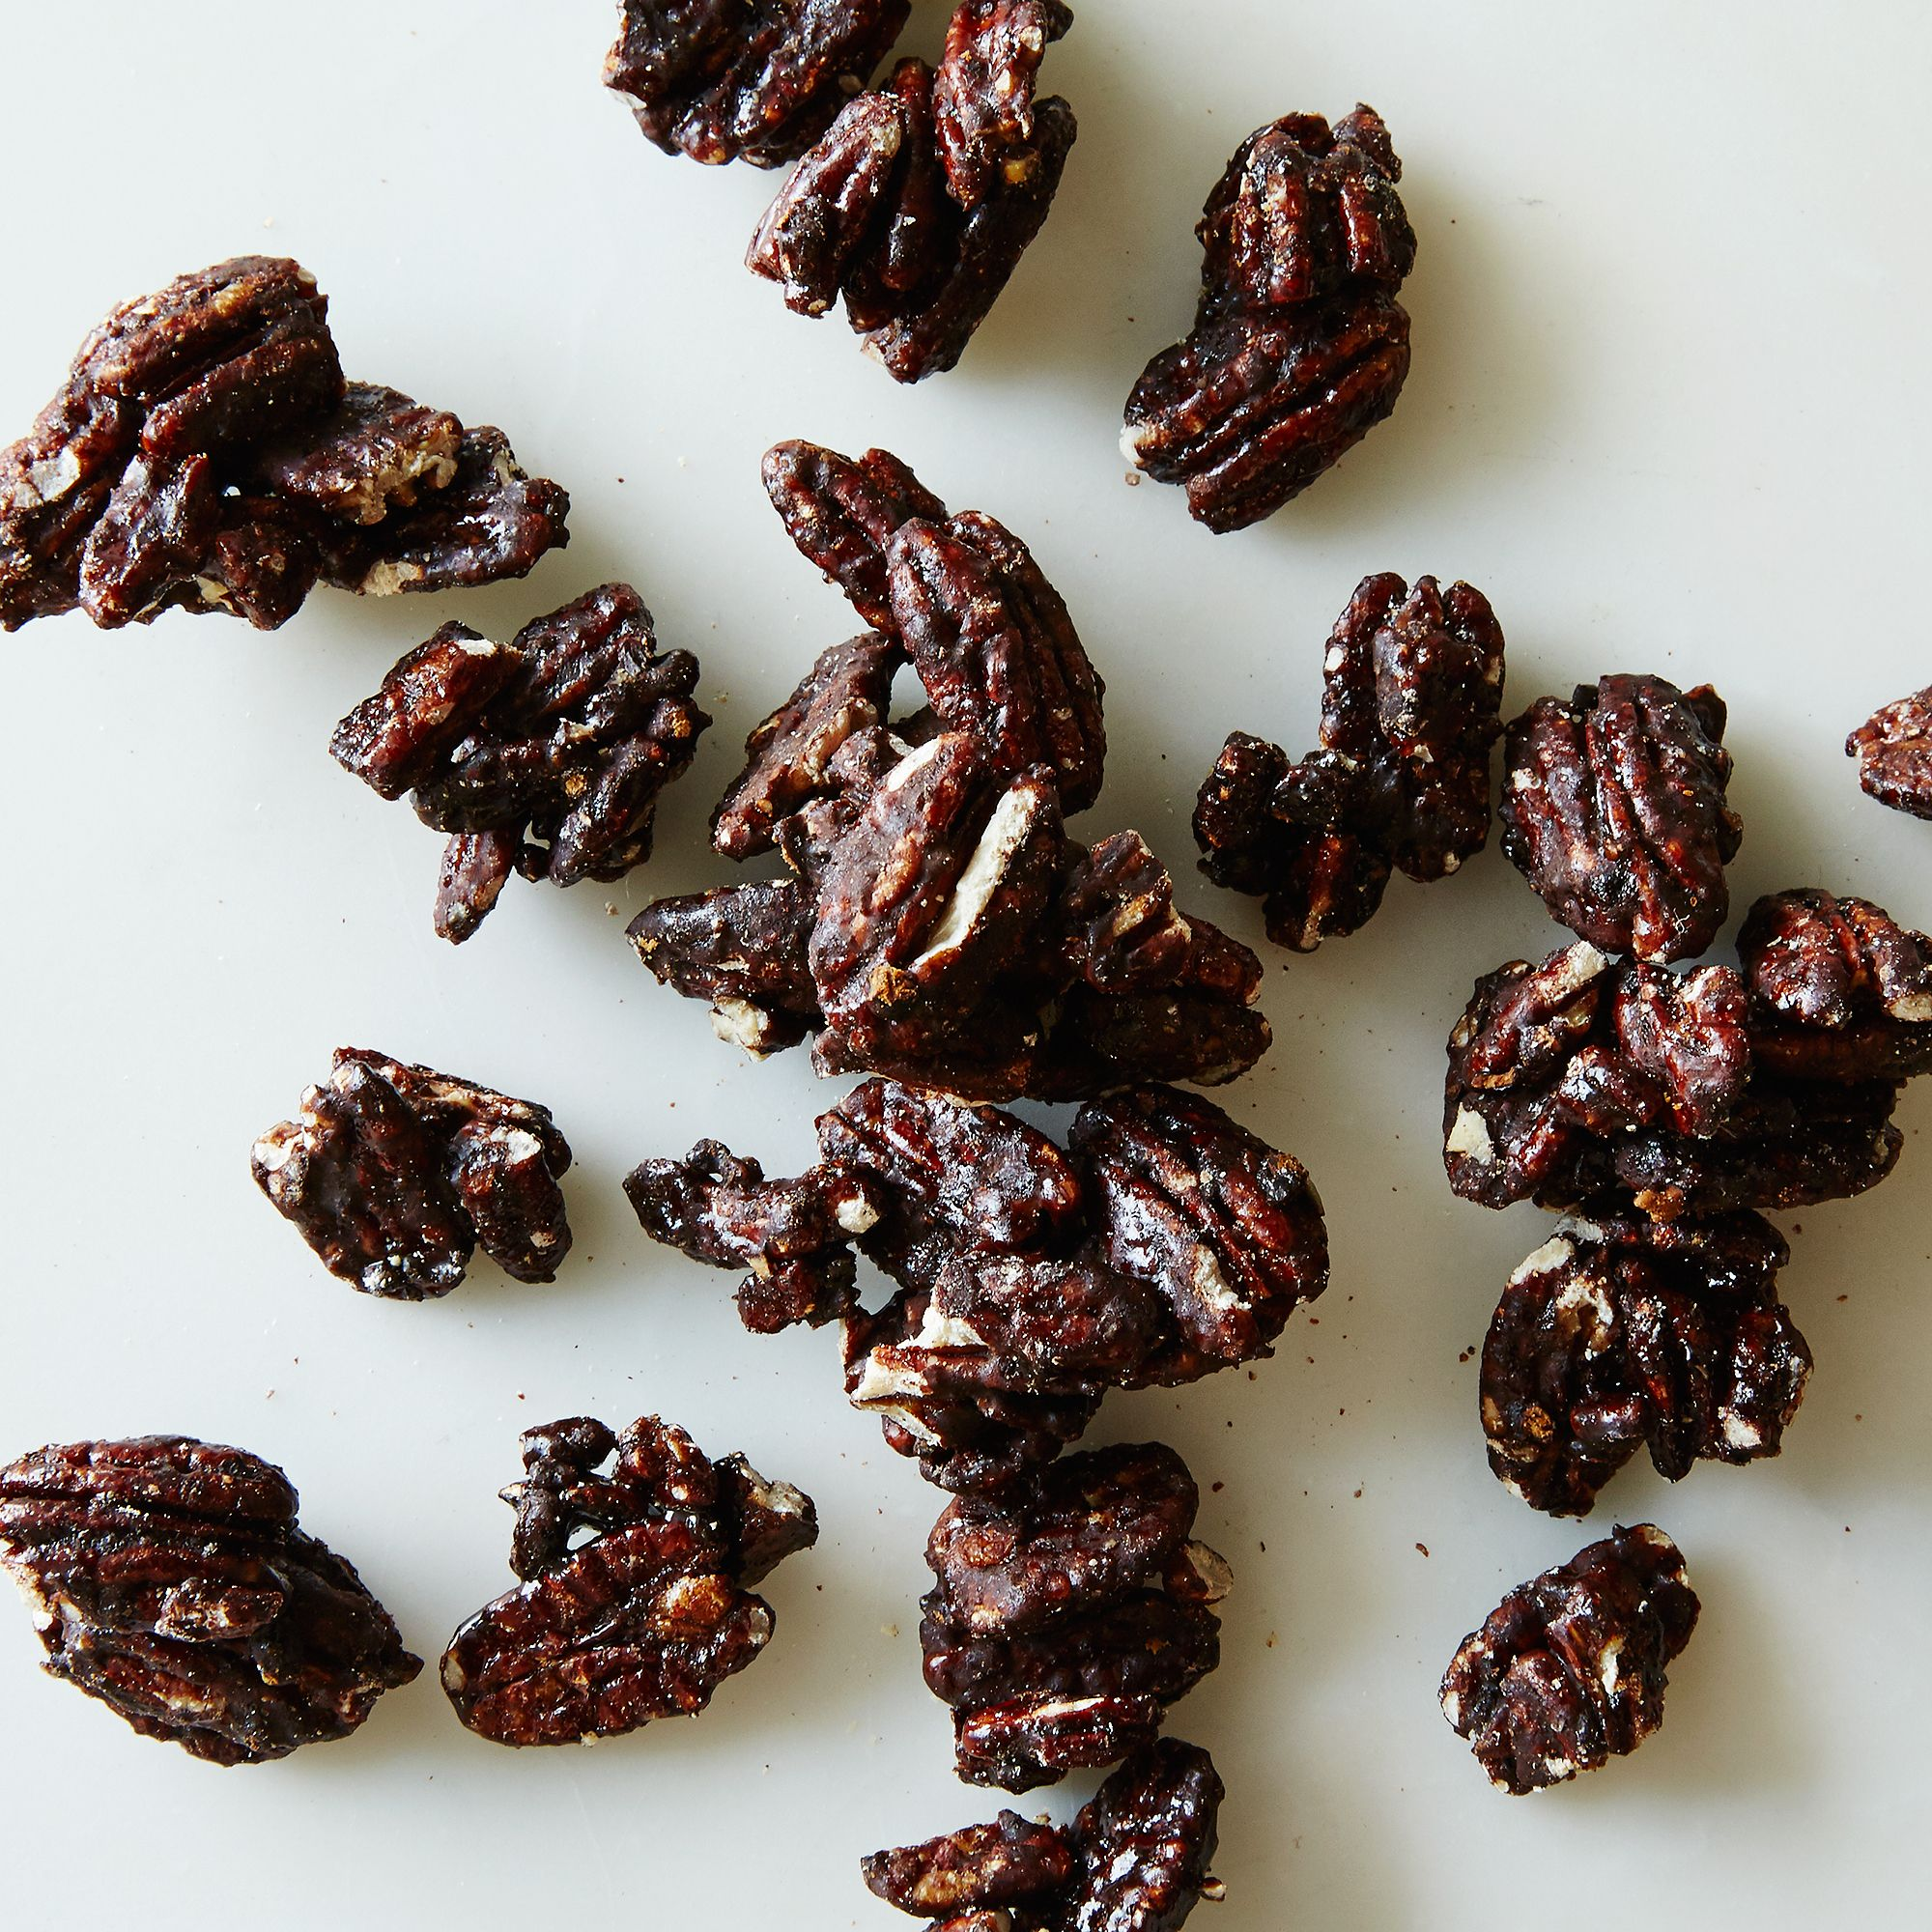 F2438376 a0f7 11e5 a190 0ef7535729df  2015 0313 sugar plum chocolates sweet and savory exotic nuts spiced cocoa pecans detail 002